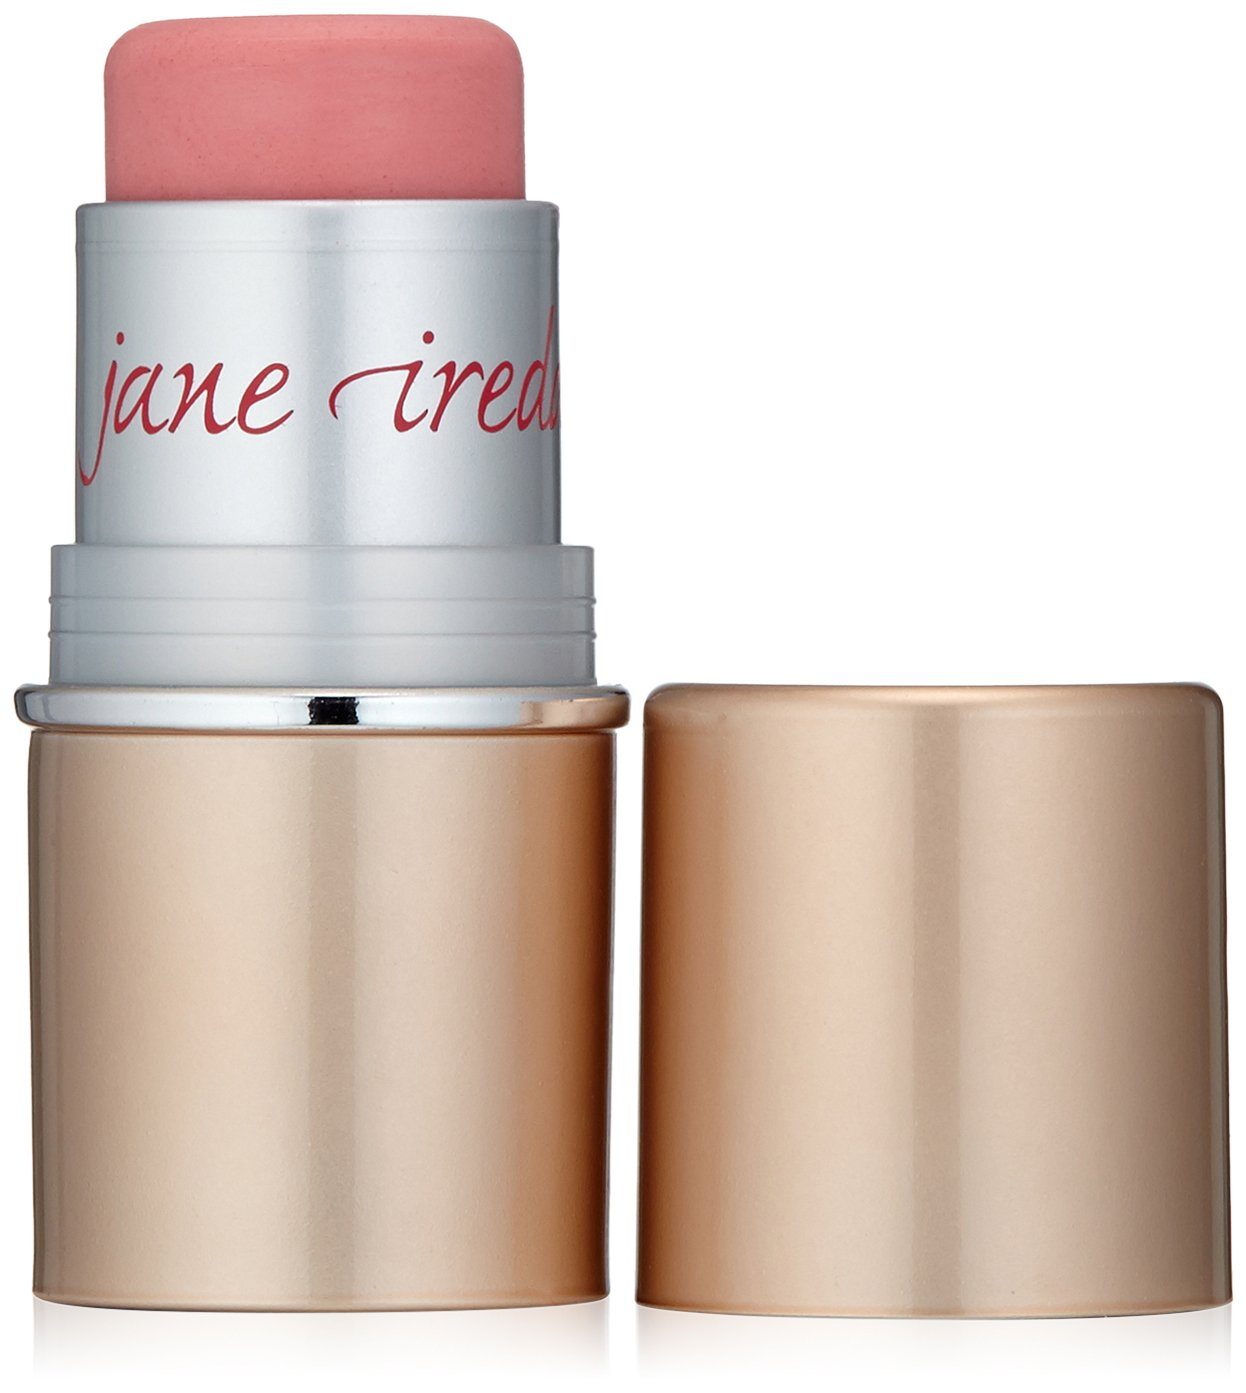 Jane Iredale In Touch Cream Blush, Clarity.14 Ounce